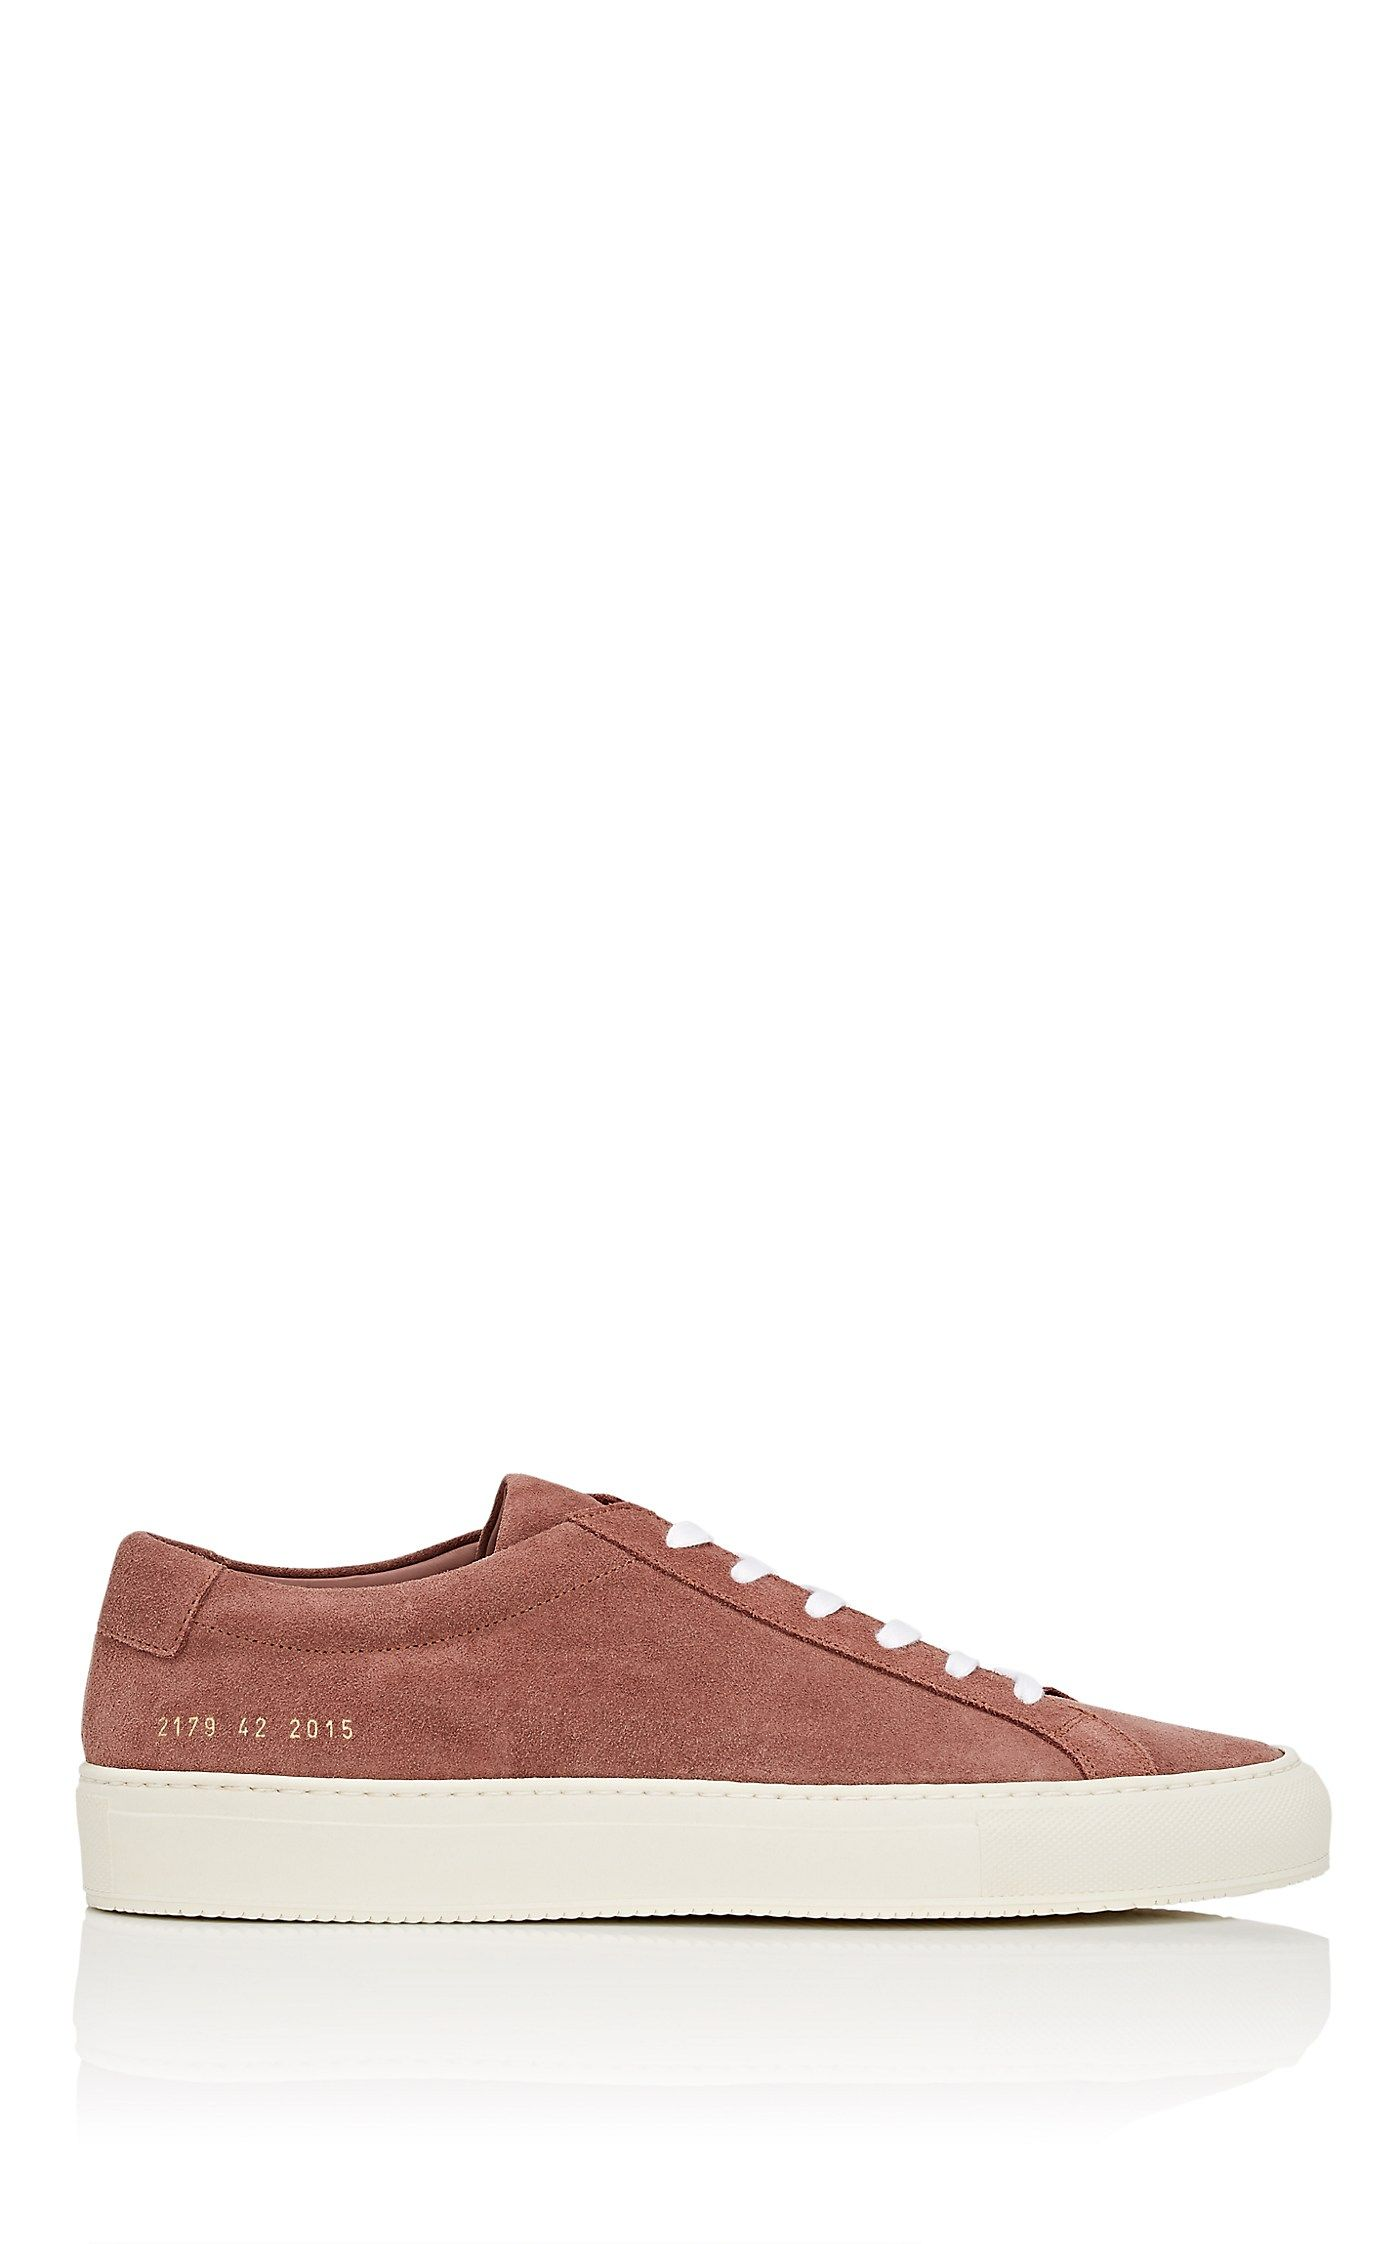 presenting half off more photos Common Projects Men's Achilles Suede Sneakers | Clothes and ...